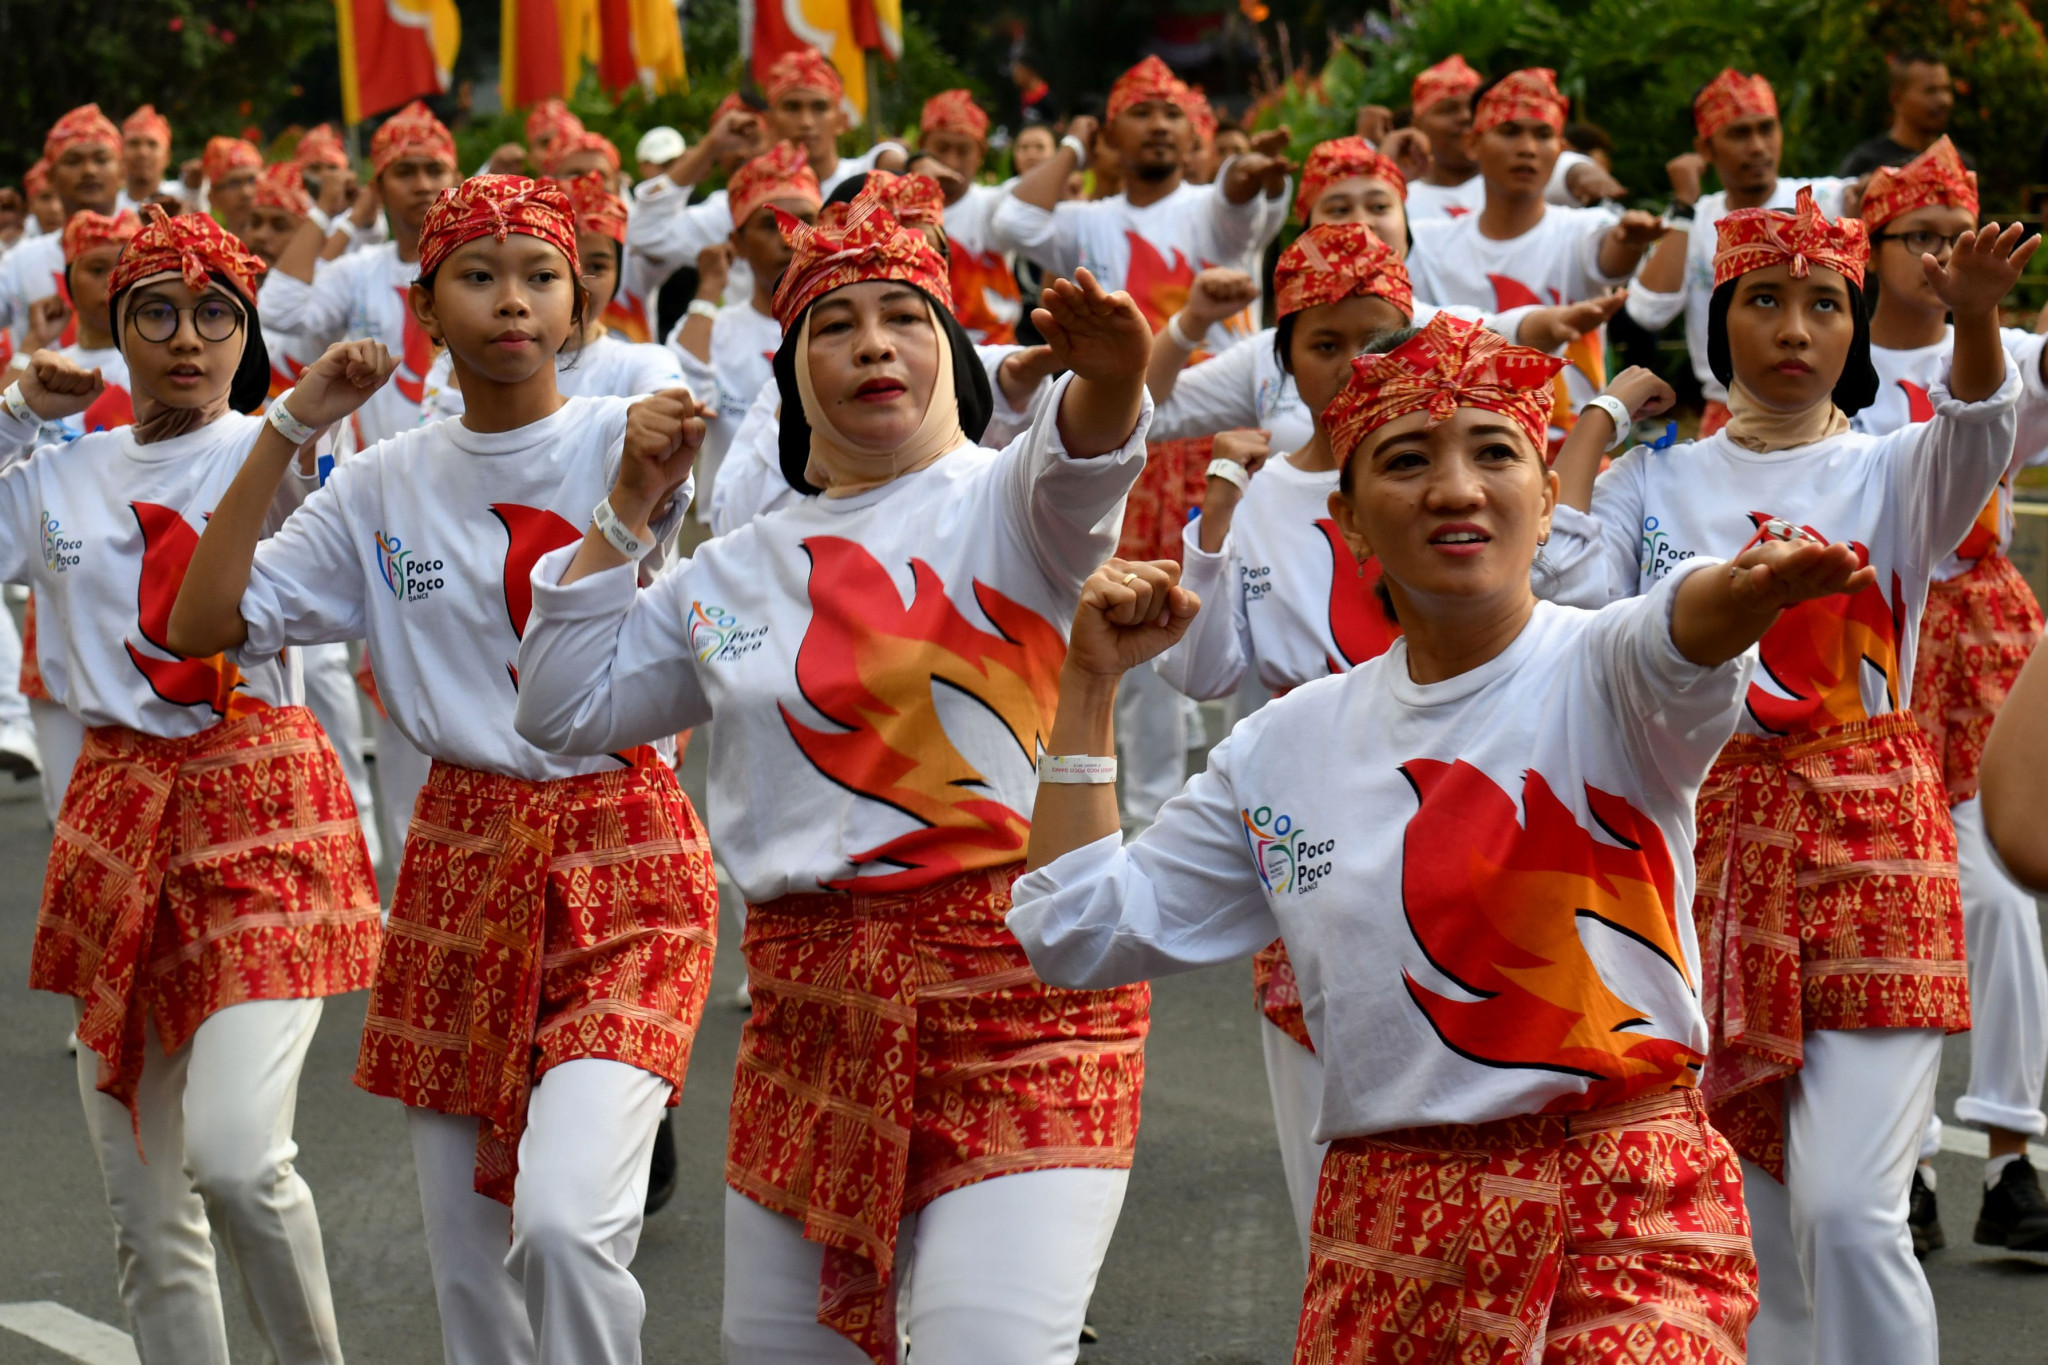 The traditional dance helped promote the Asian Games ©Getty Images